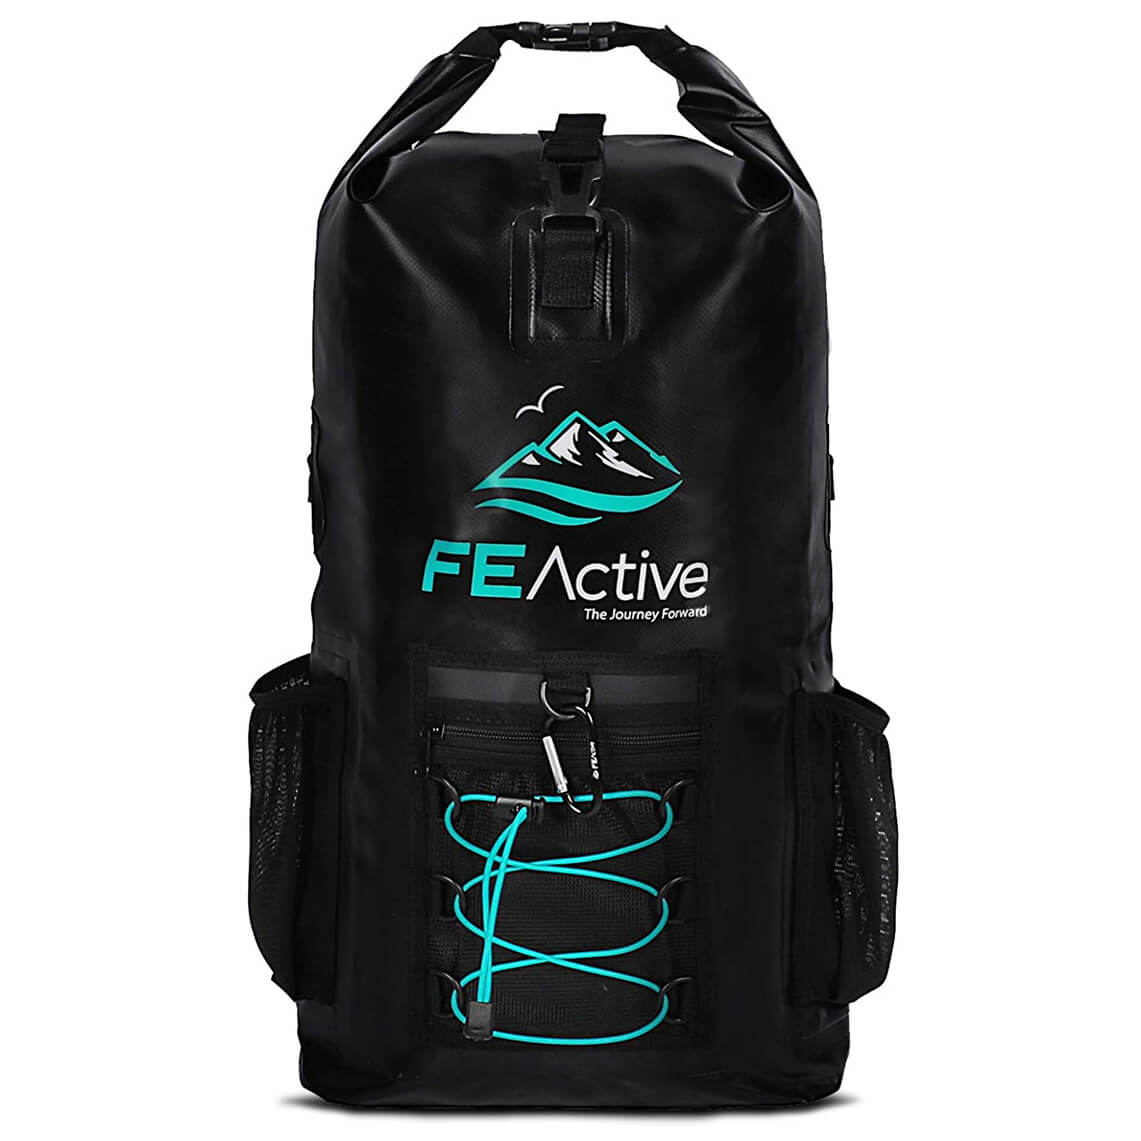 FE Active Dry Bag Waterproof Backpack - 20L Eco Friendly Hiking Backpack